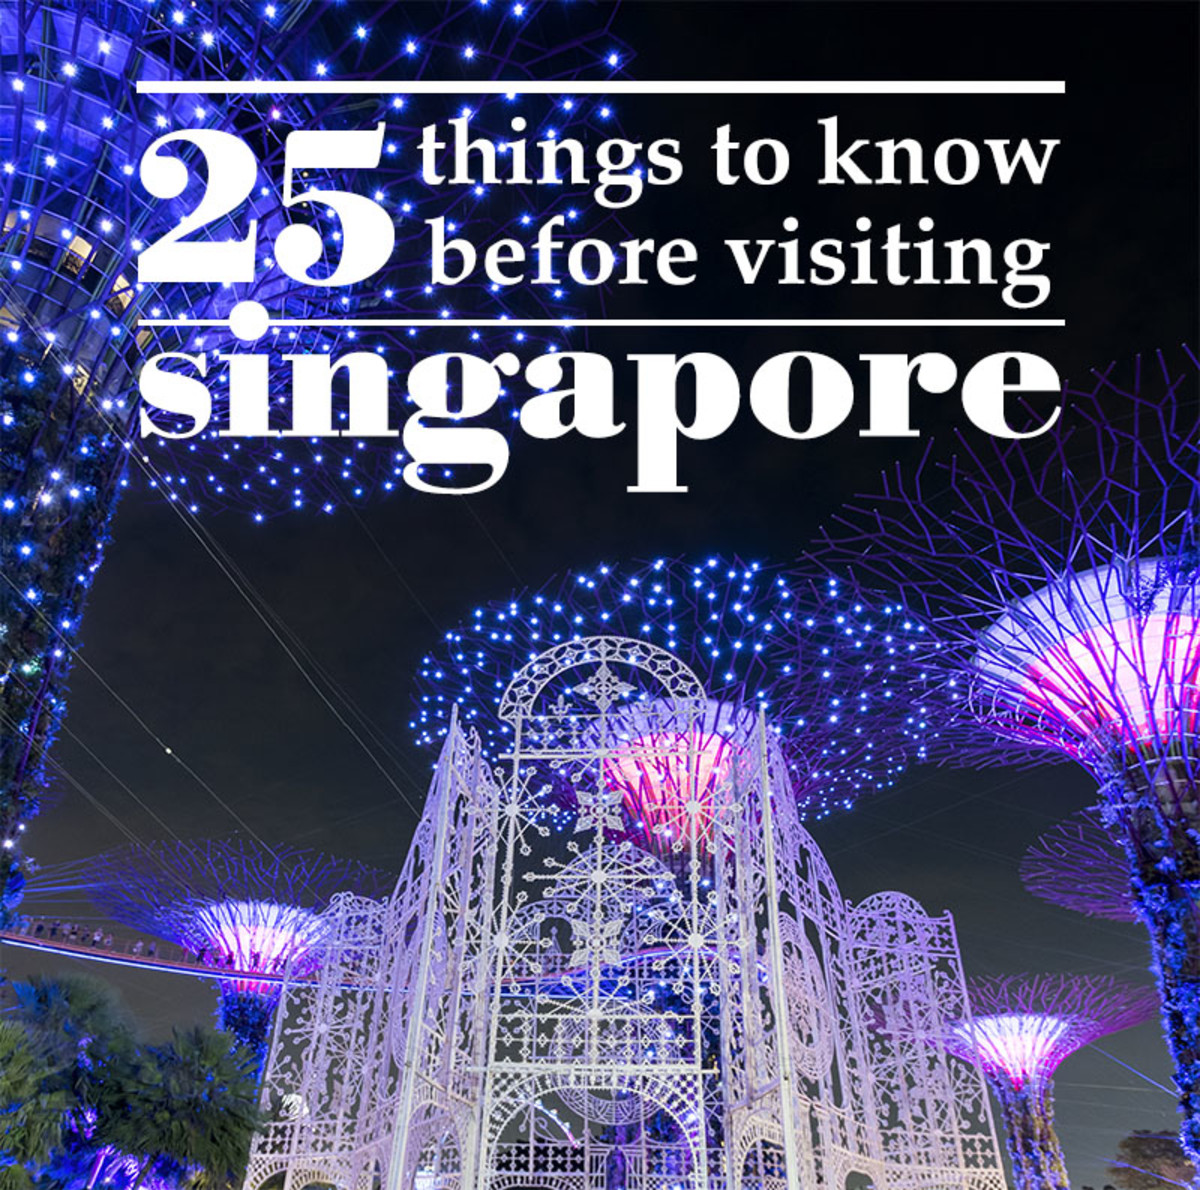 The must-knows before visiting Singapore.